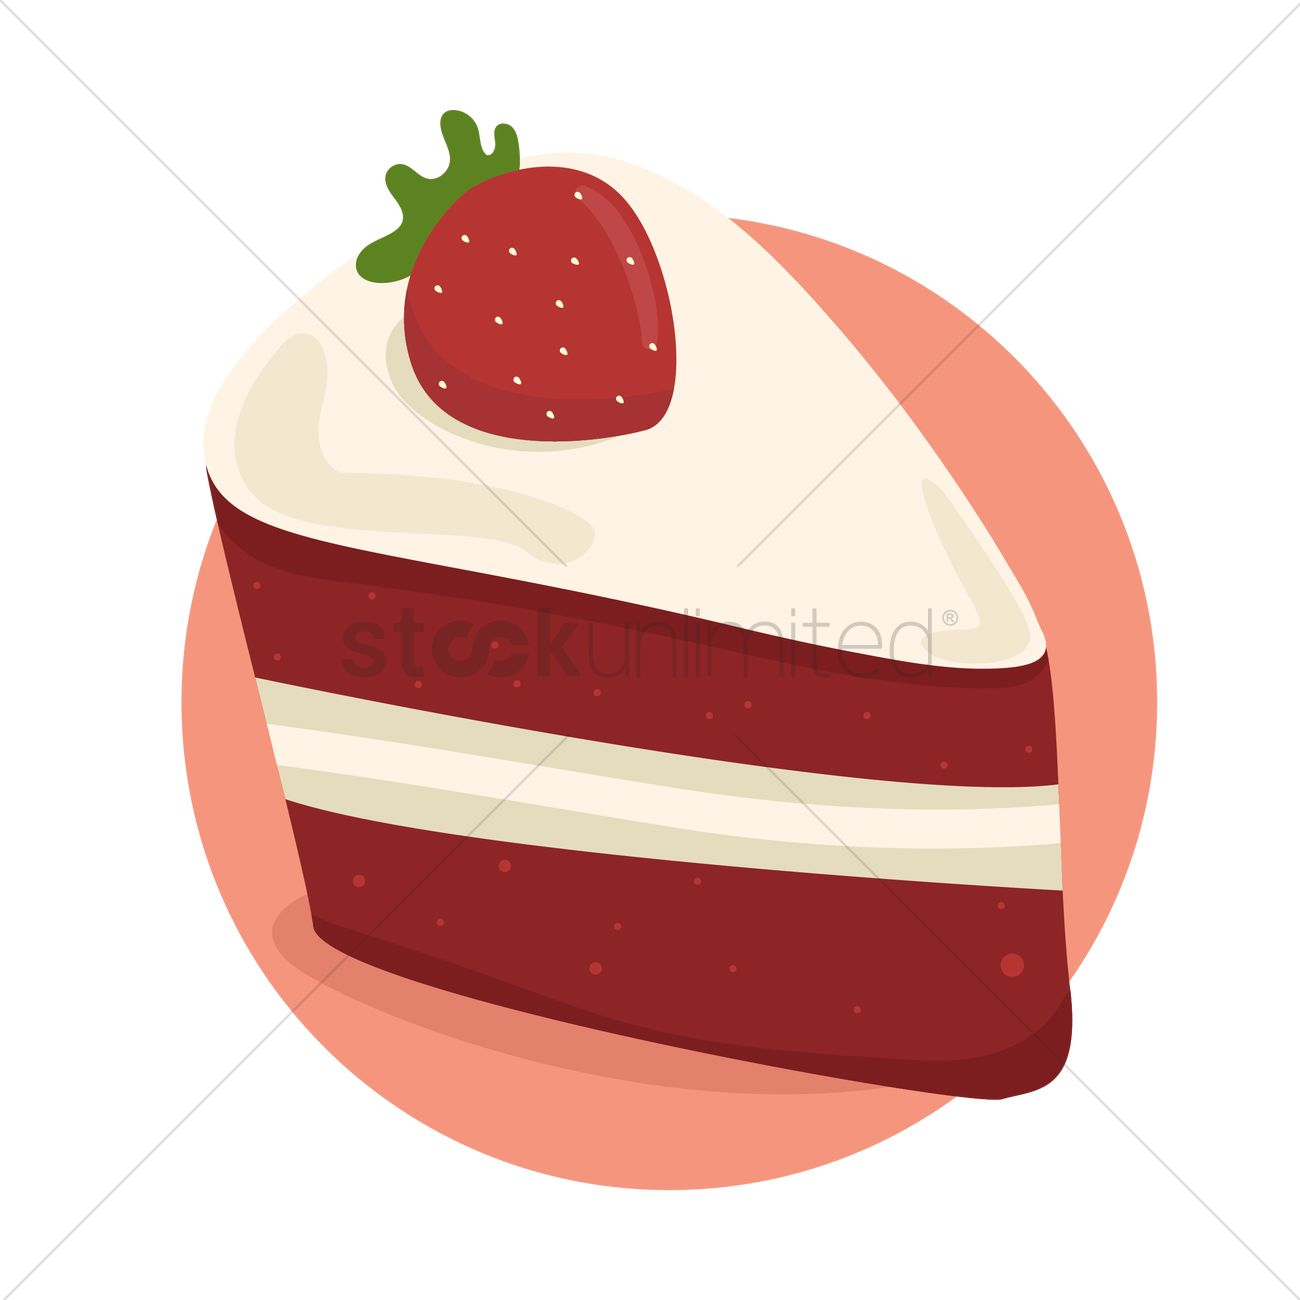 Strawberry Cake Graphic